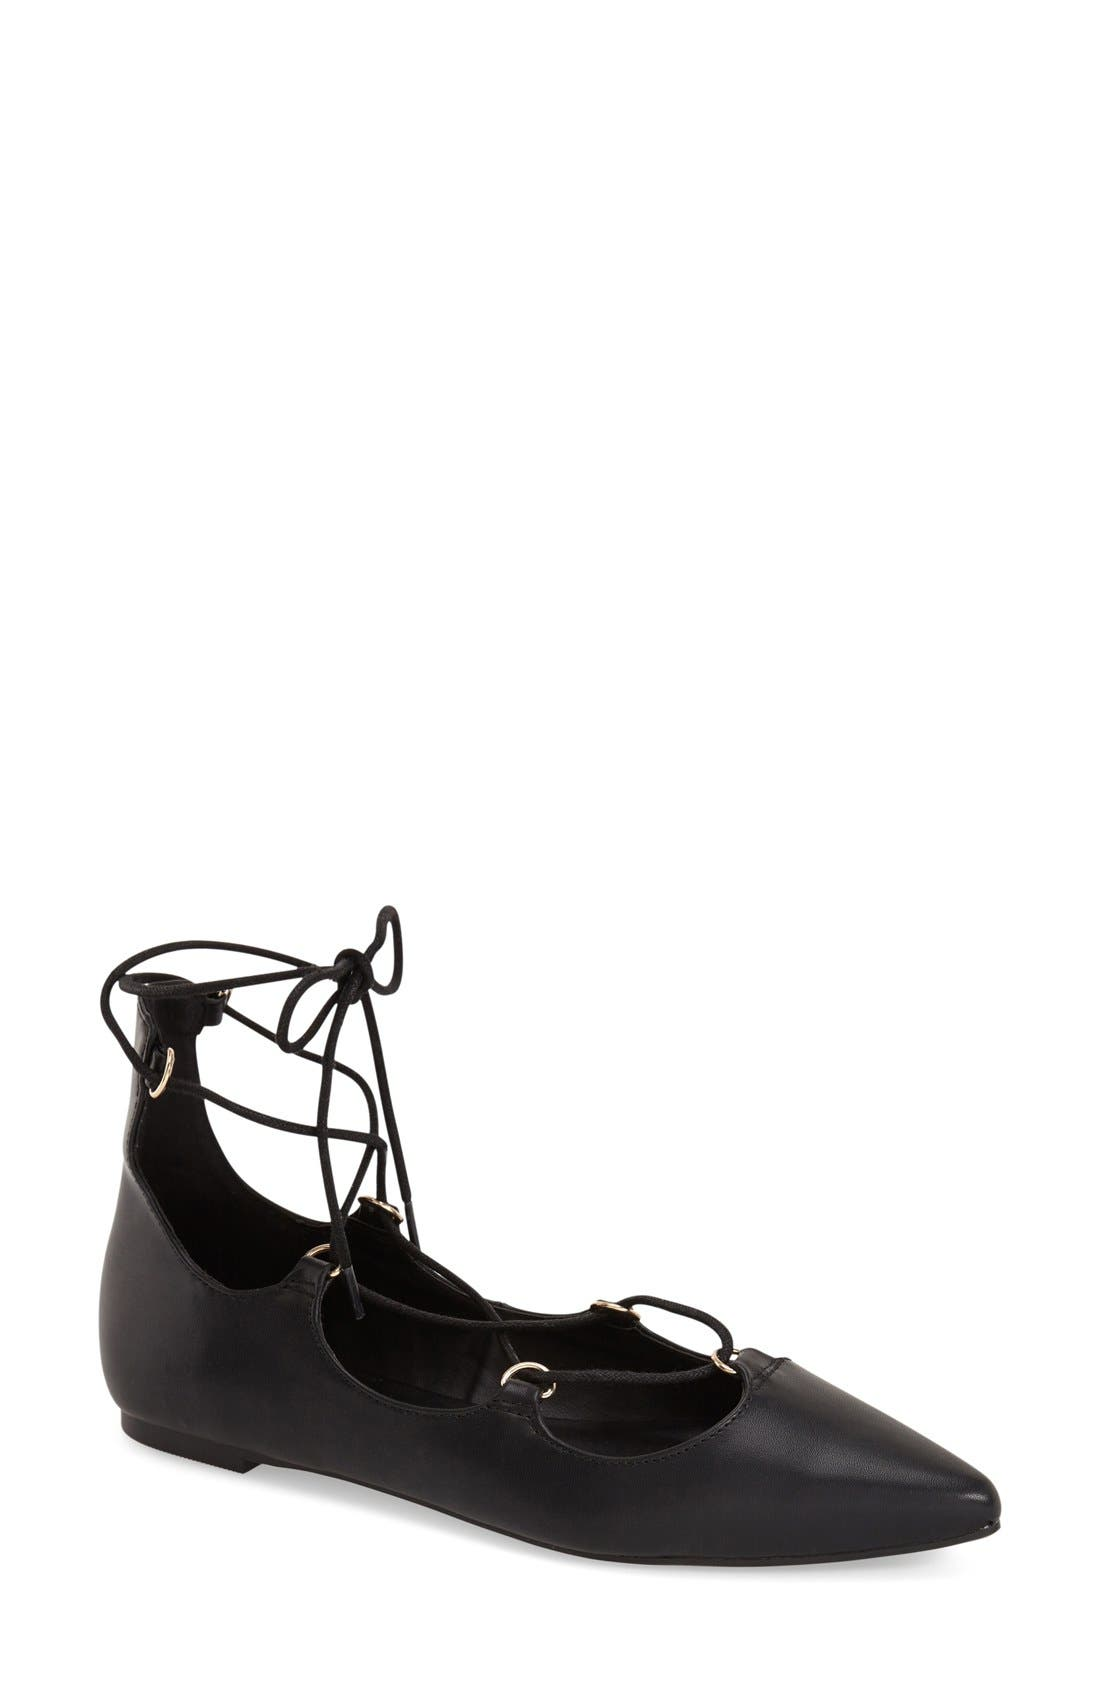 Alternate Image 1 Selected - Topshop 'Fancy' Pointy Toe Ghillie Flat (Women)